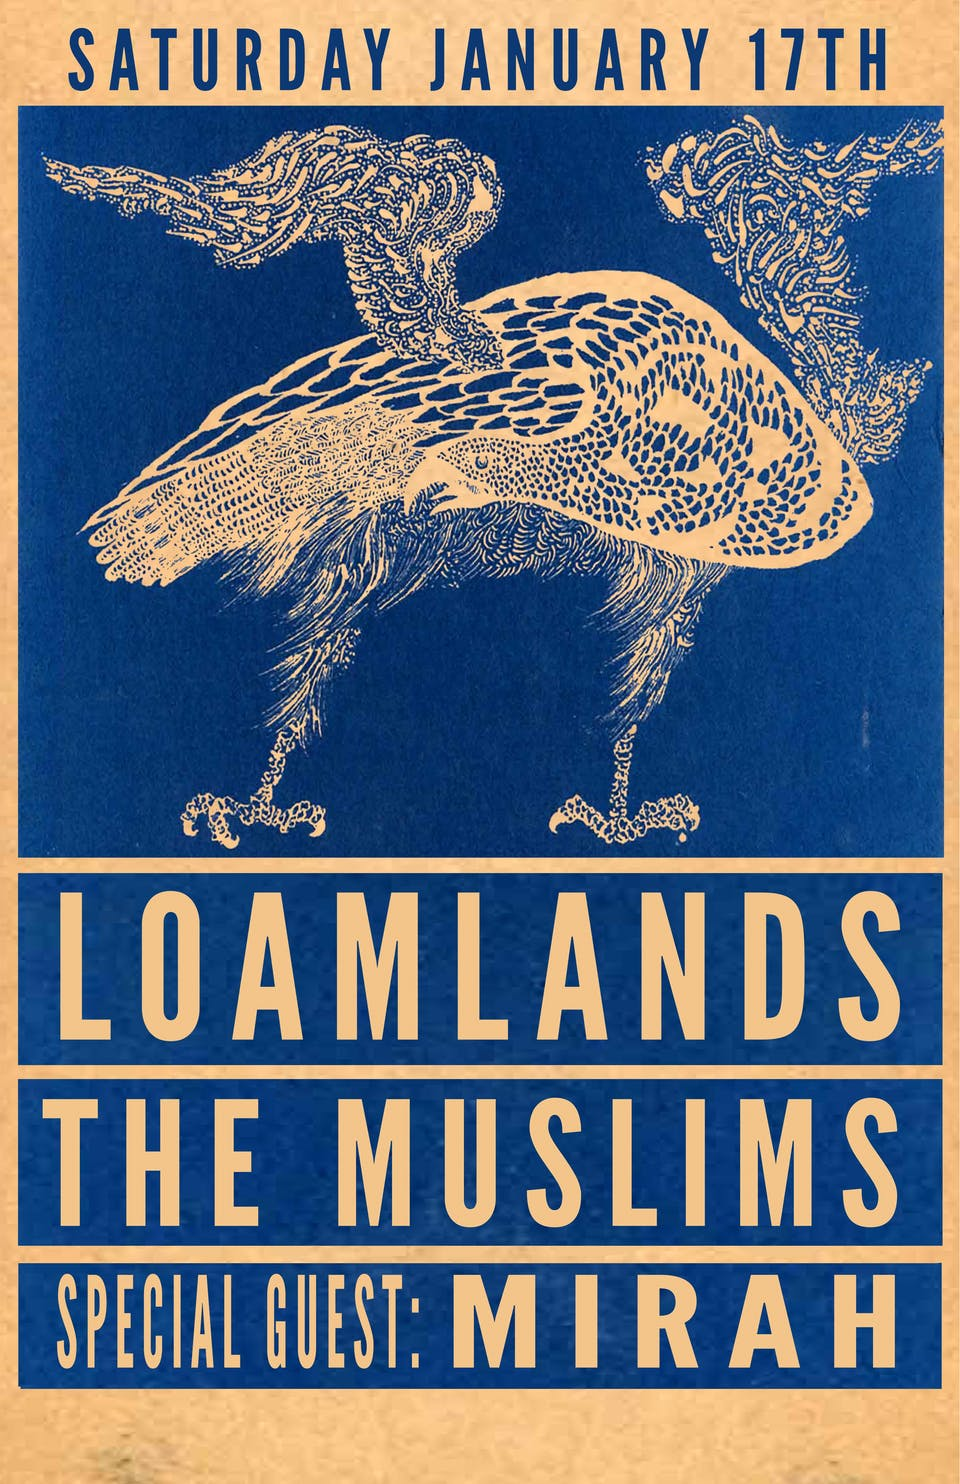 Loamlands & The Muslims with Mirah